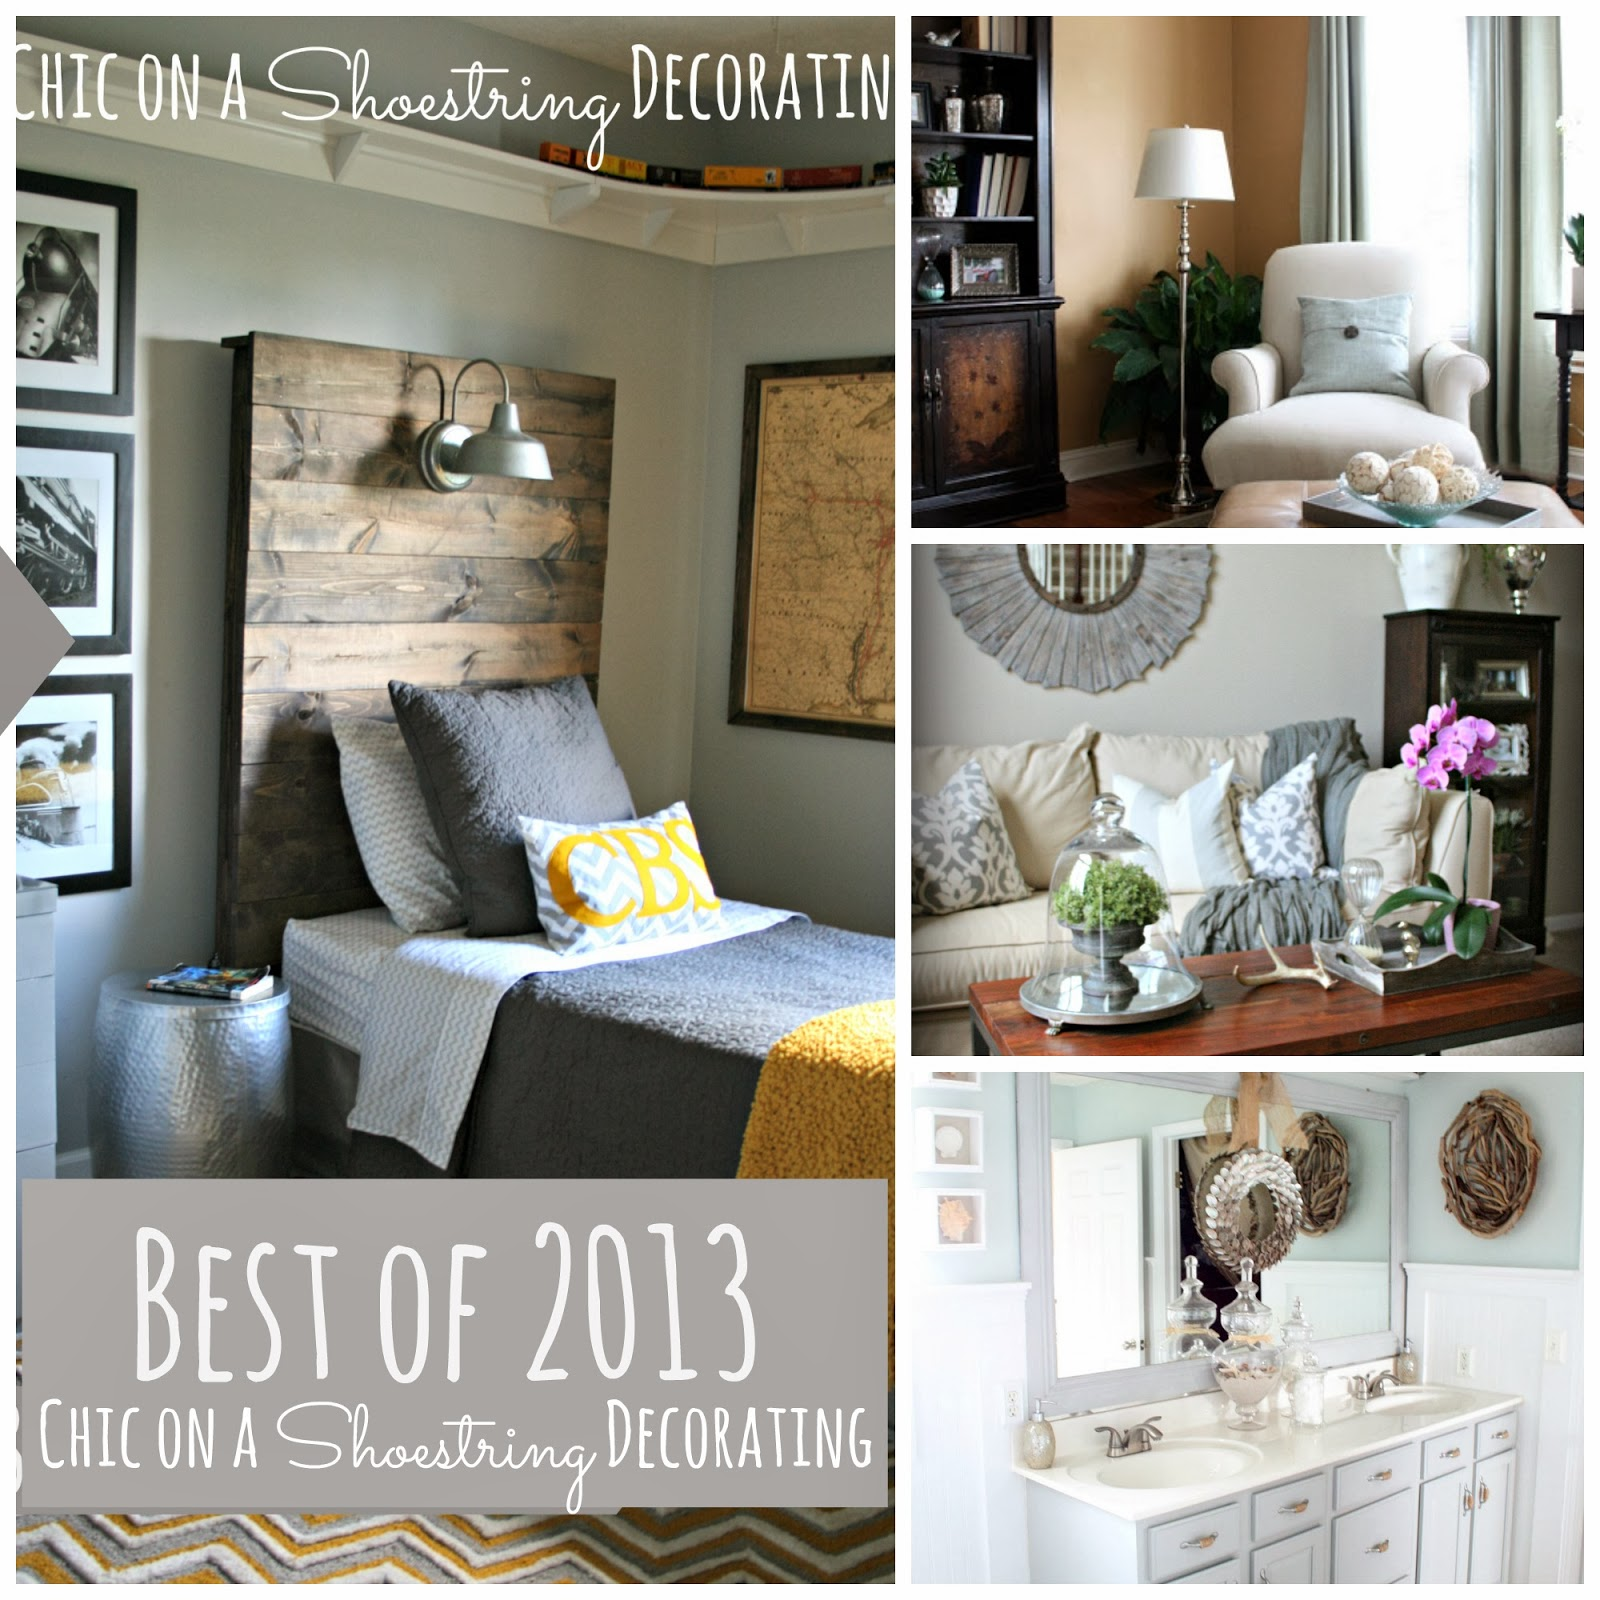 Best of 2013 Chic on a Shoestring Decorating blog